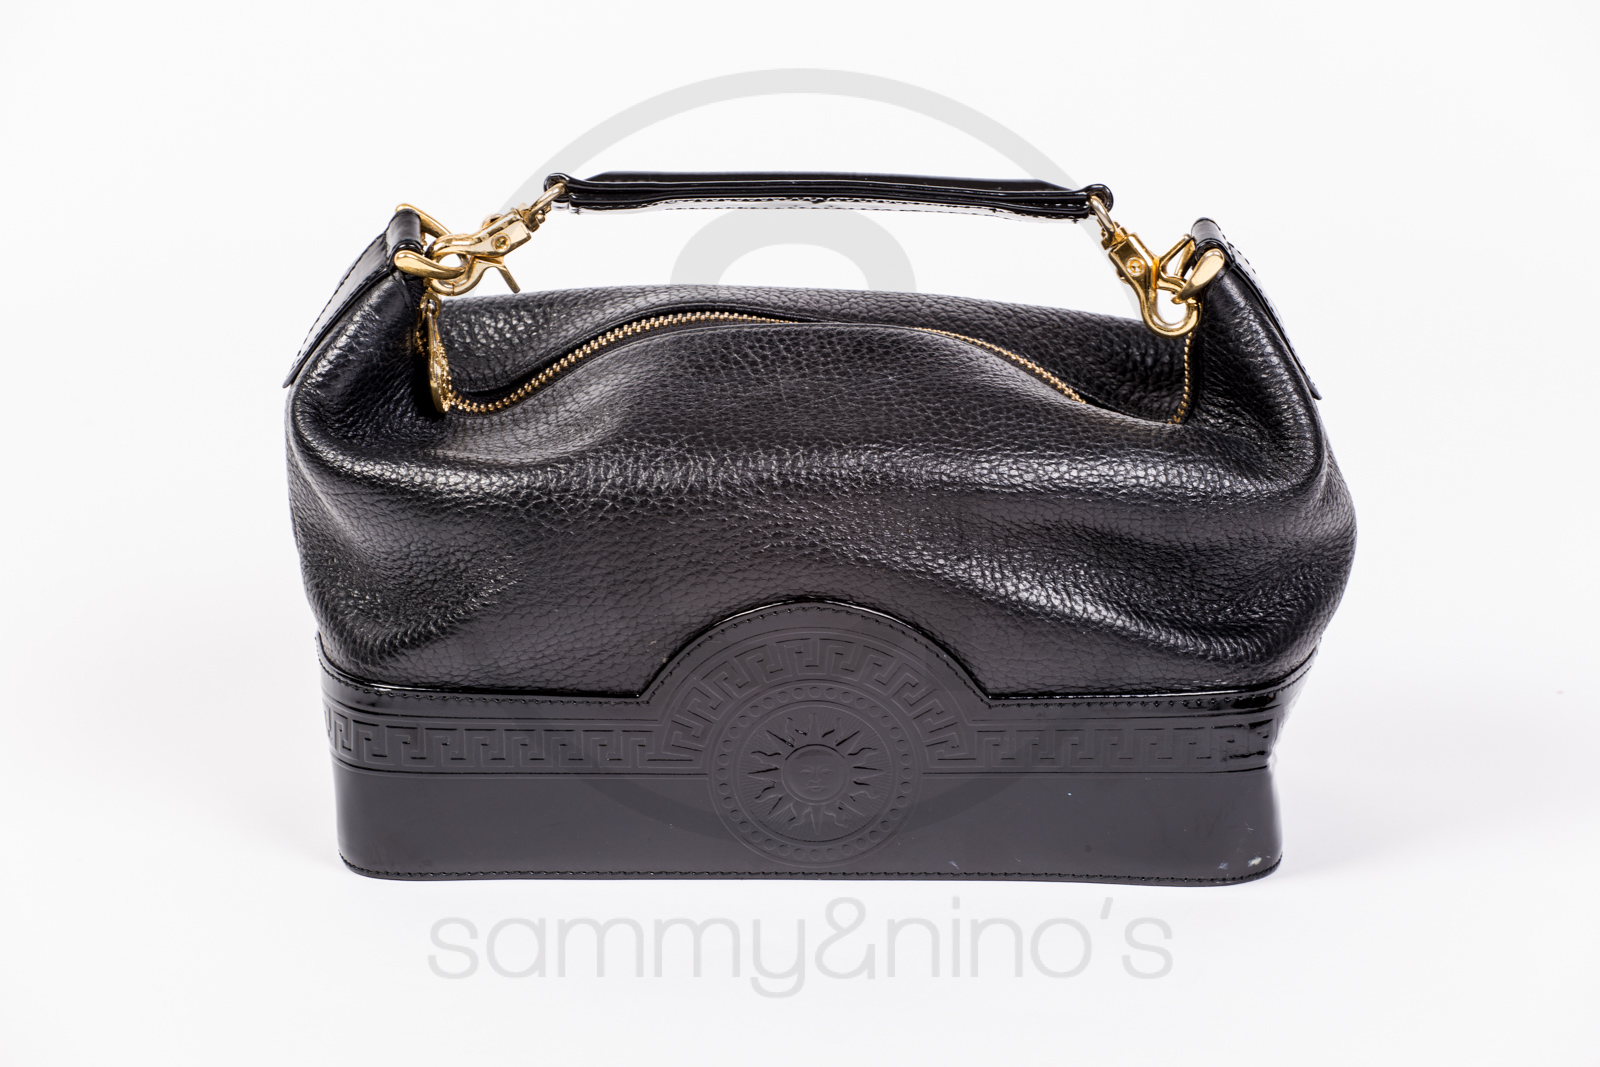 f4a93f08f4 1; 2; 3; 4; 5; 6. Previous; Next. HomeSOLD OUTGianni Versace leather mini  bag